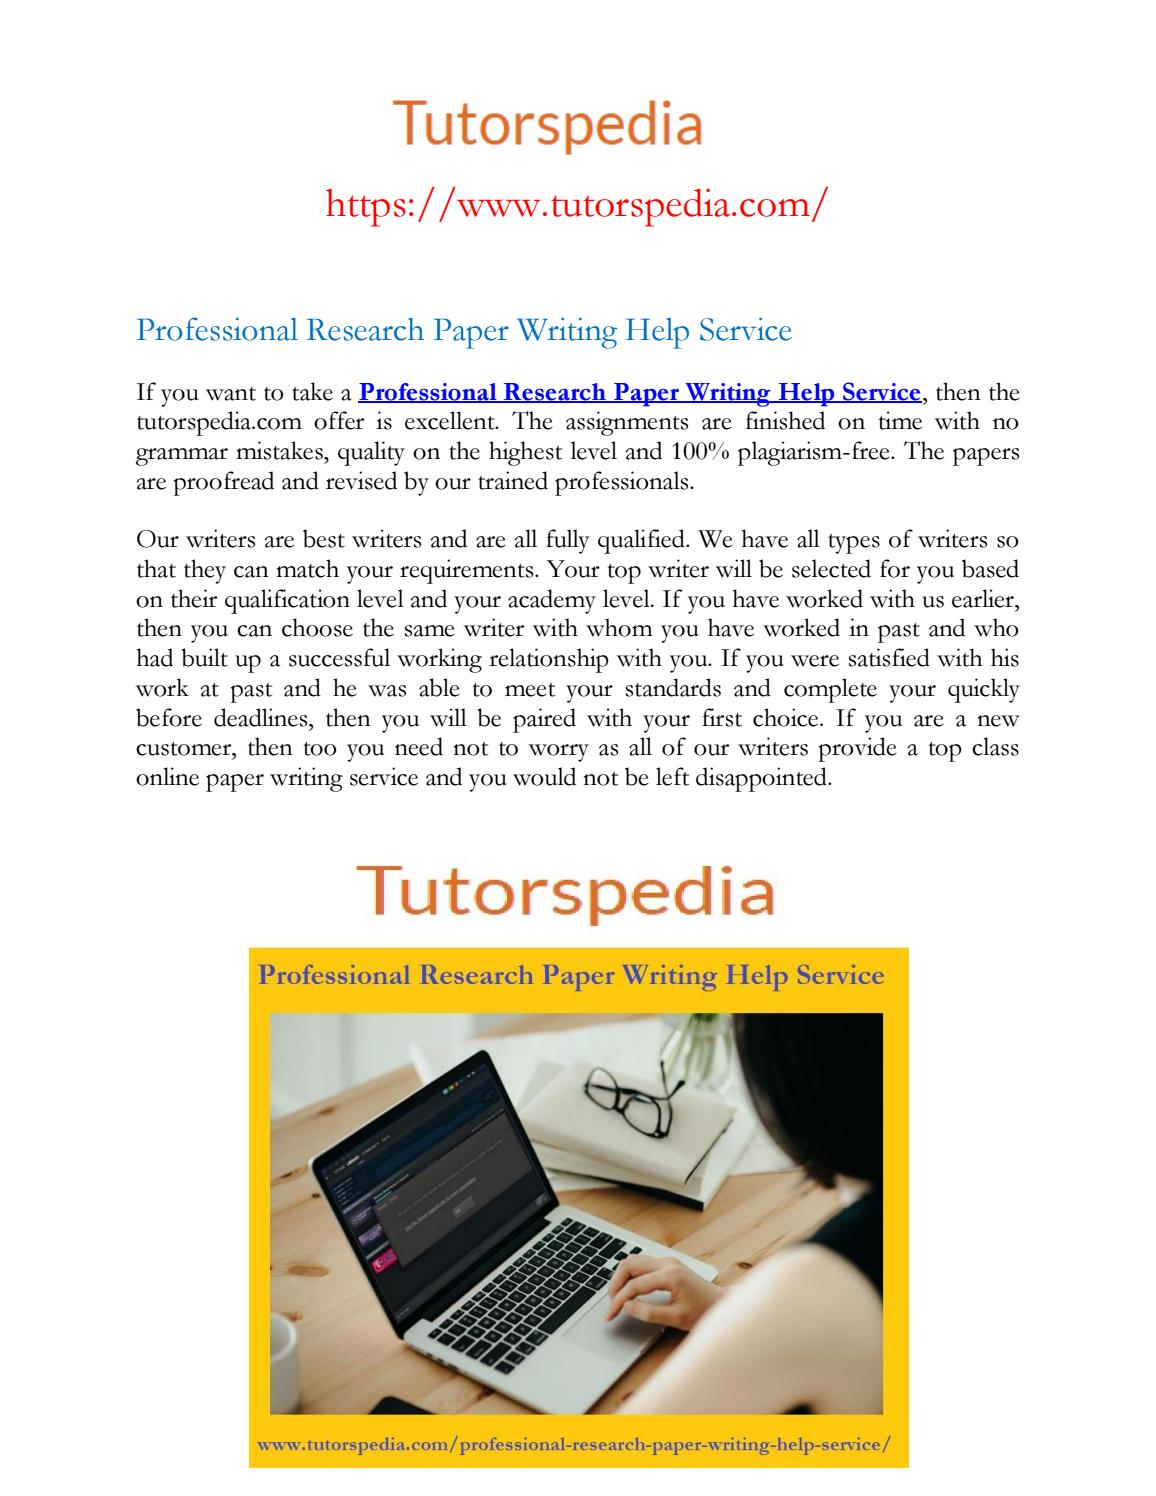 Professional research paper writing site popular admission essay ghostwriter sites ca